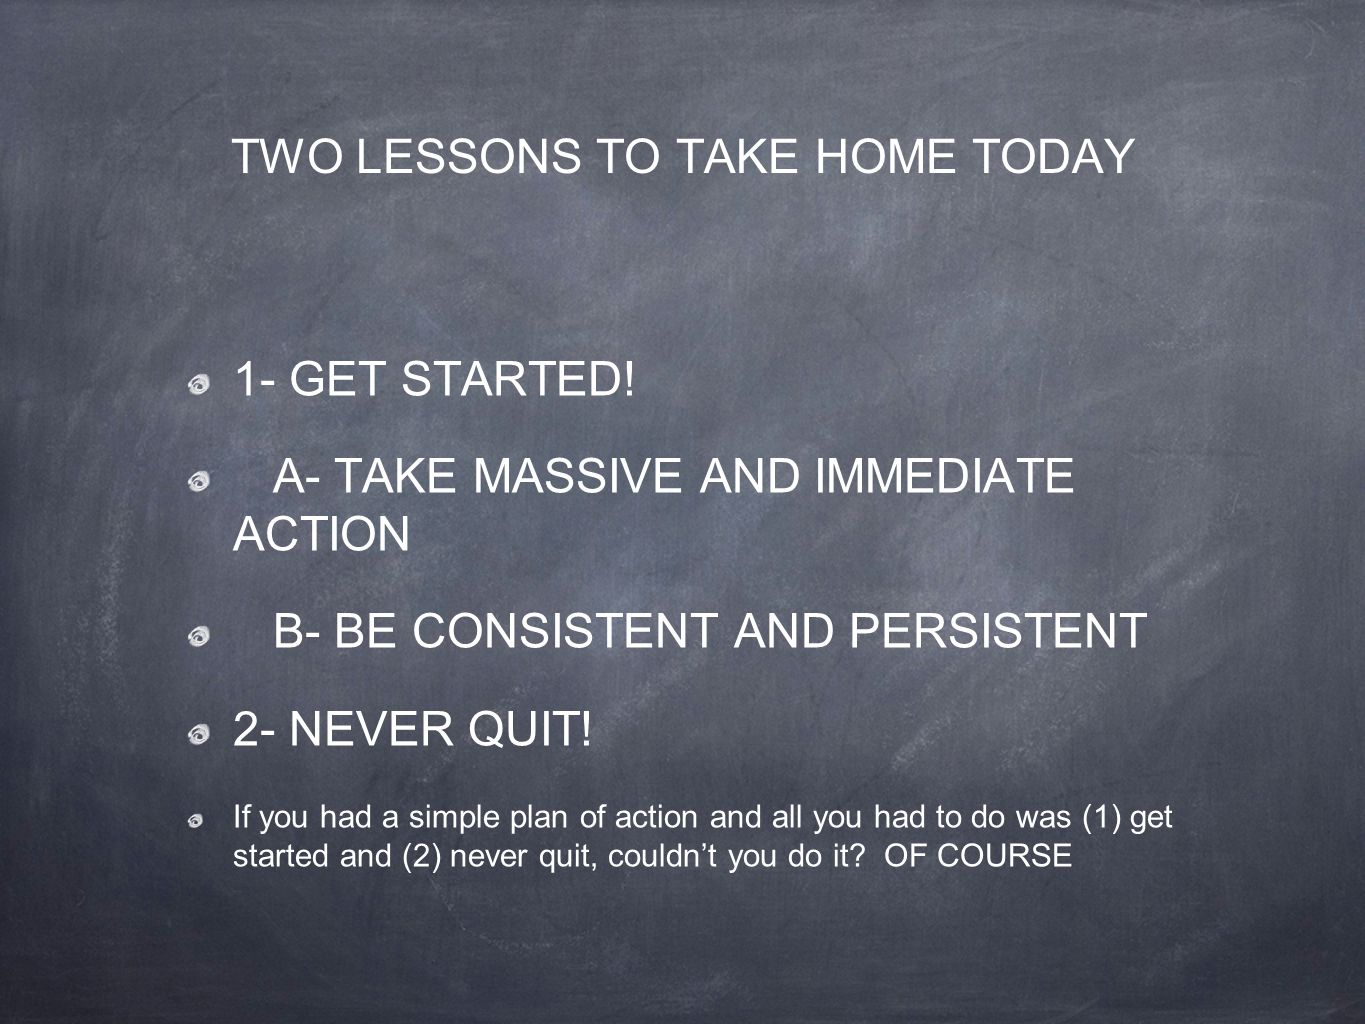 TWO LESSONS TO TAKE HOME TODAY